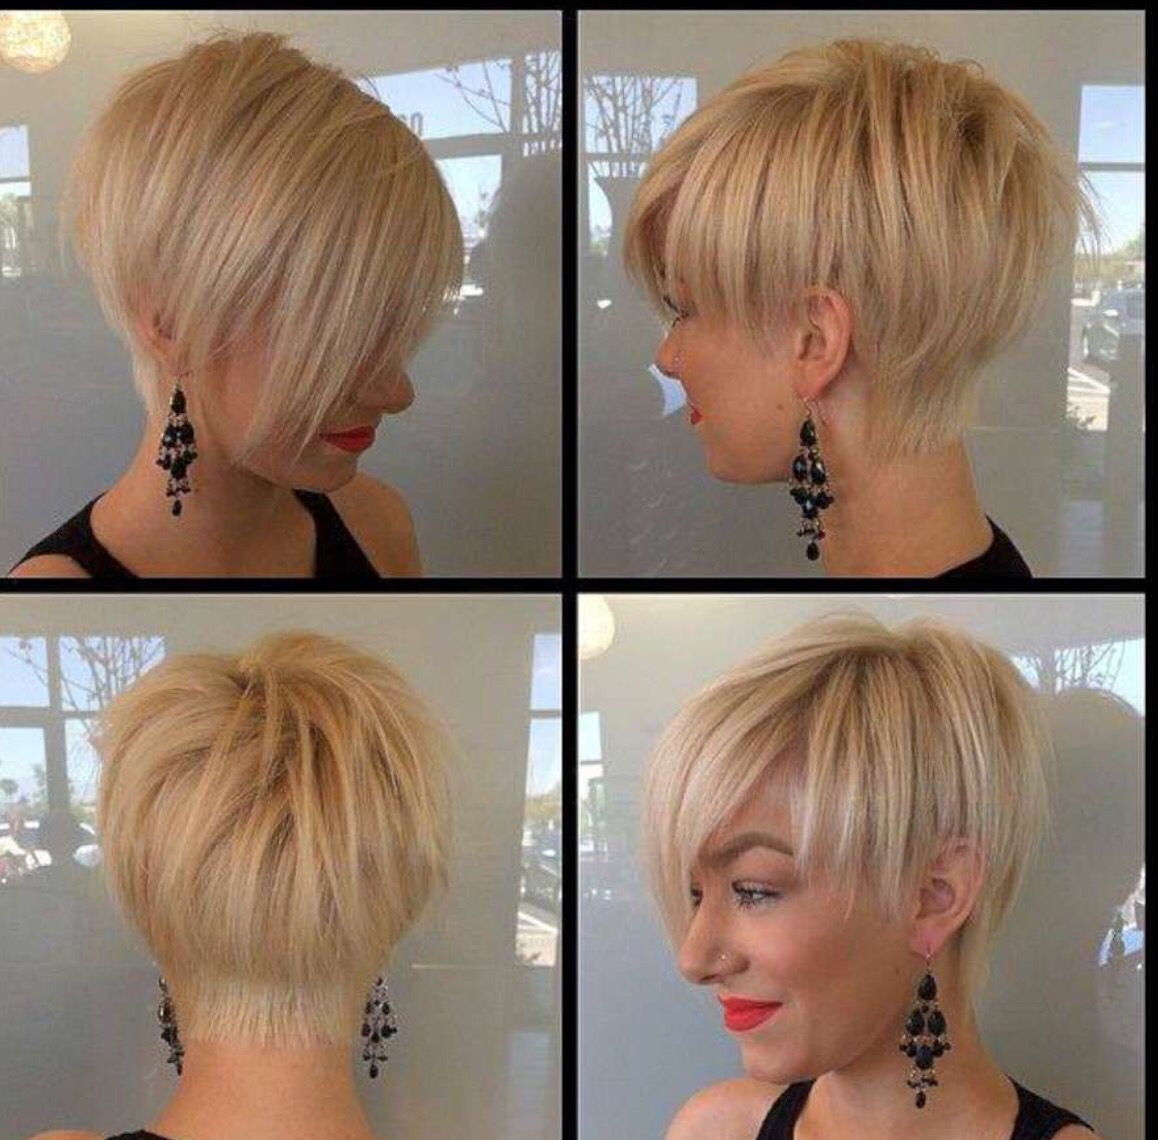 Pin by lisa duhon on hair pinterest short hair shorts and hair